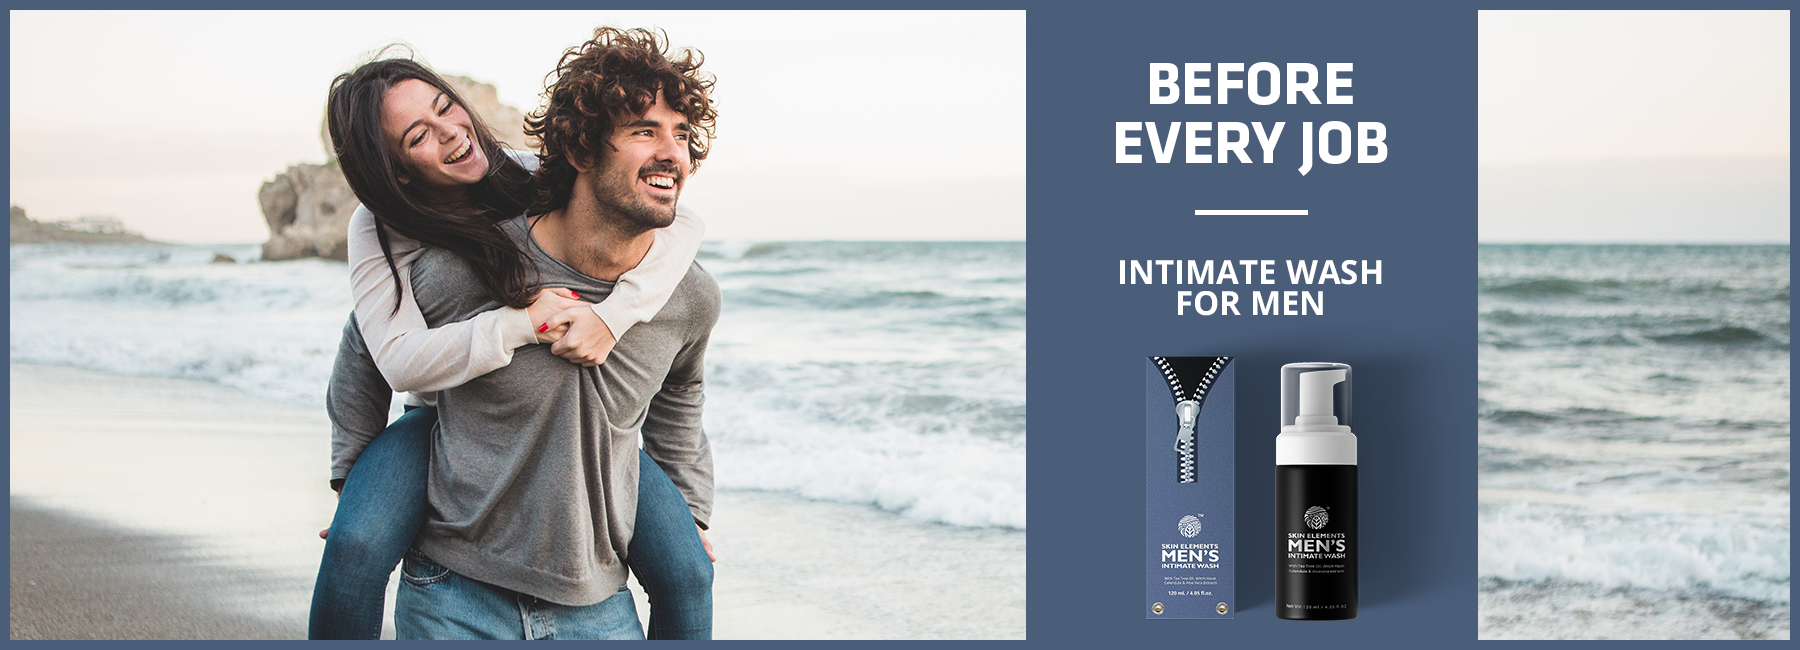 intimate-wash-for-men